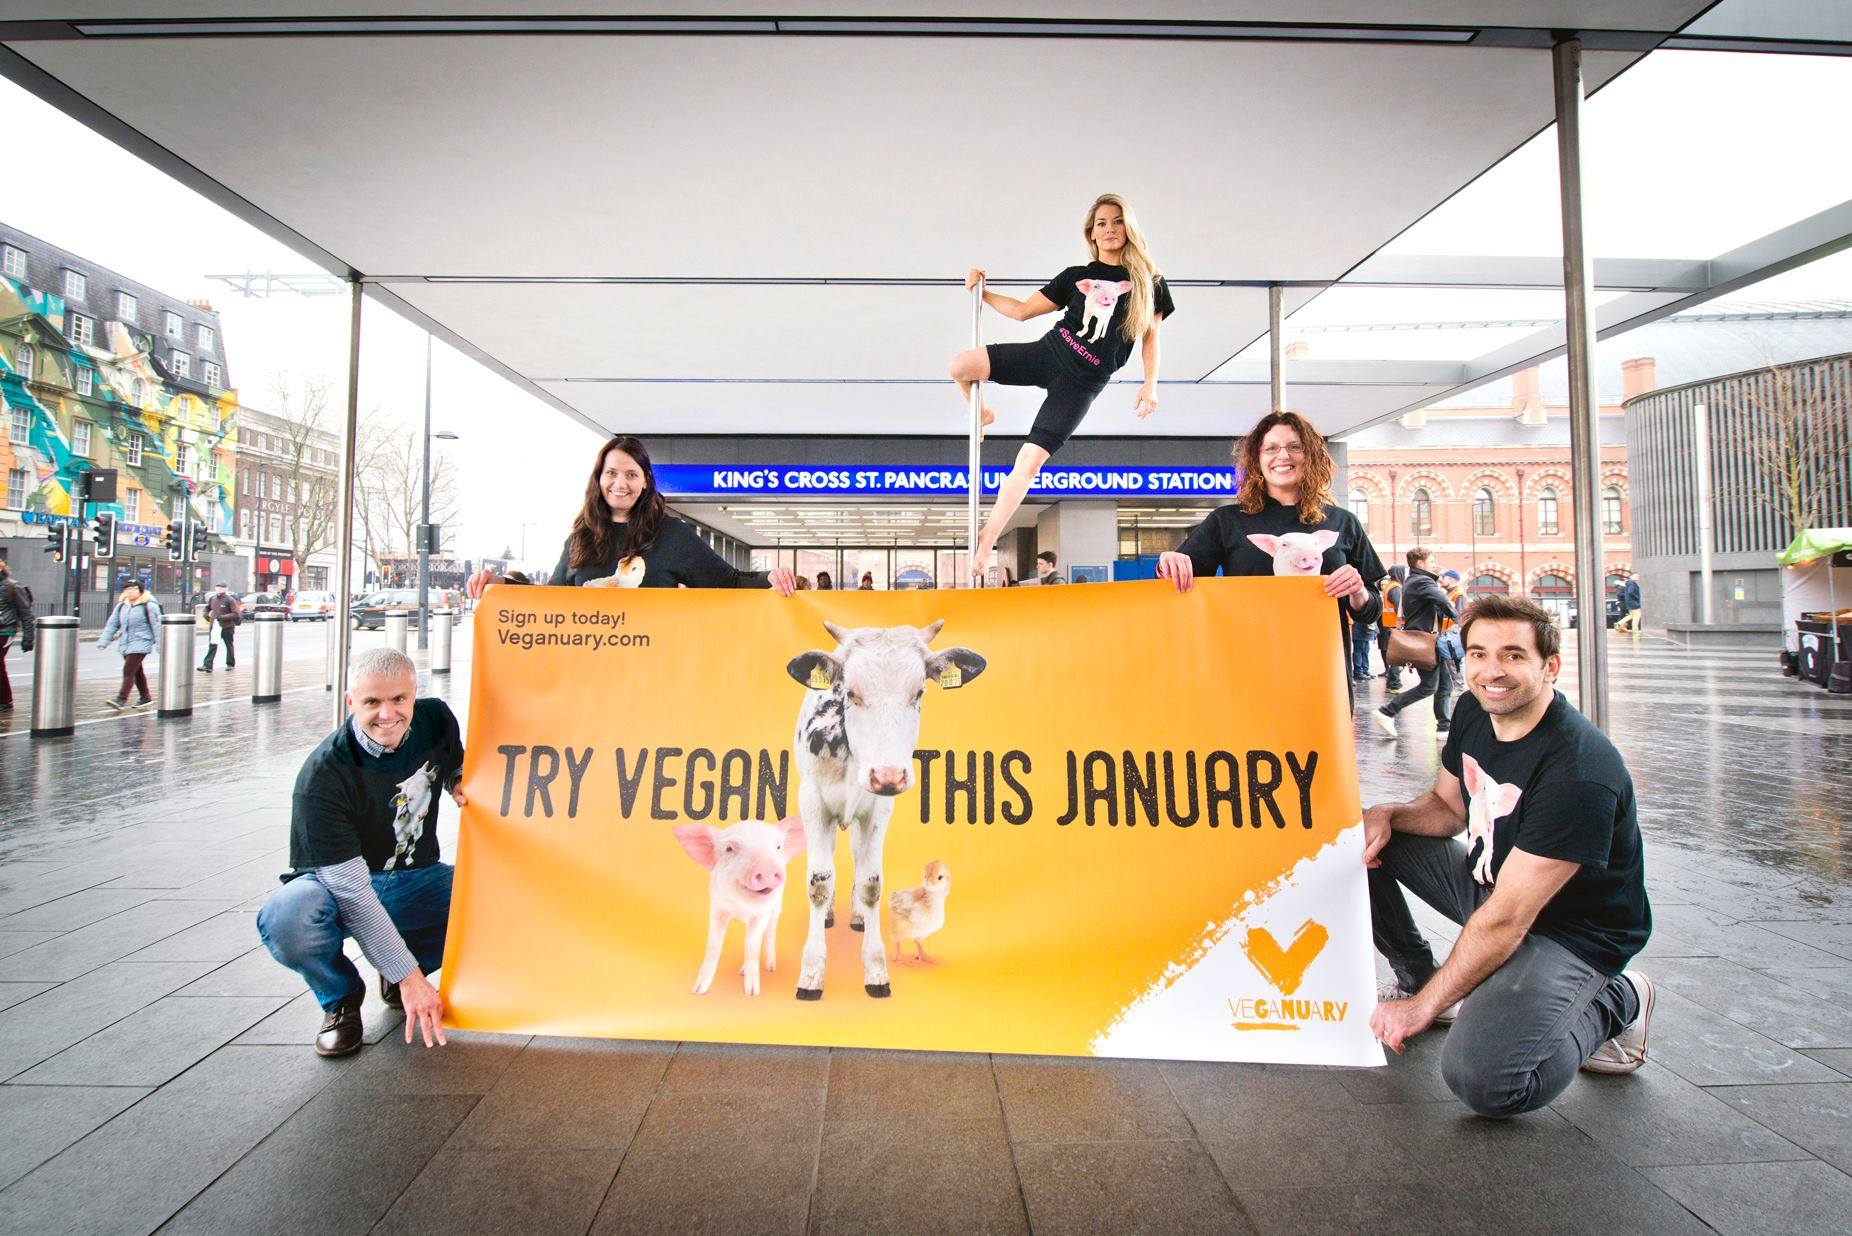 2,500 adverts for Veganuary are circulating through London's public transport system, leading to the biggest audience and signup for the campaign yet.